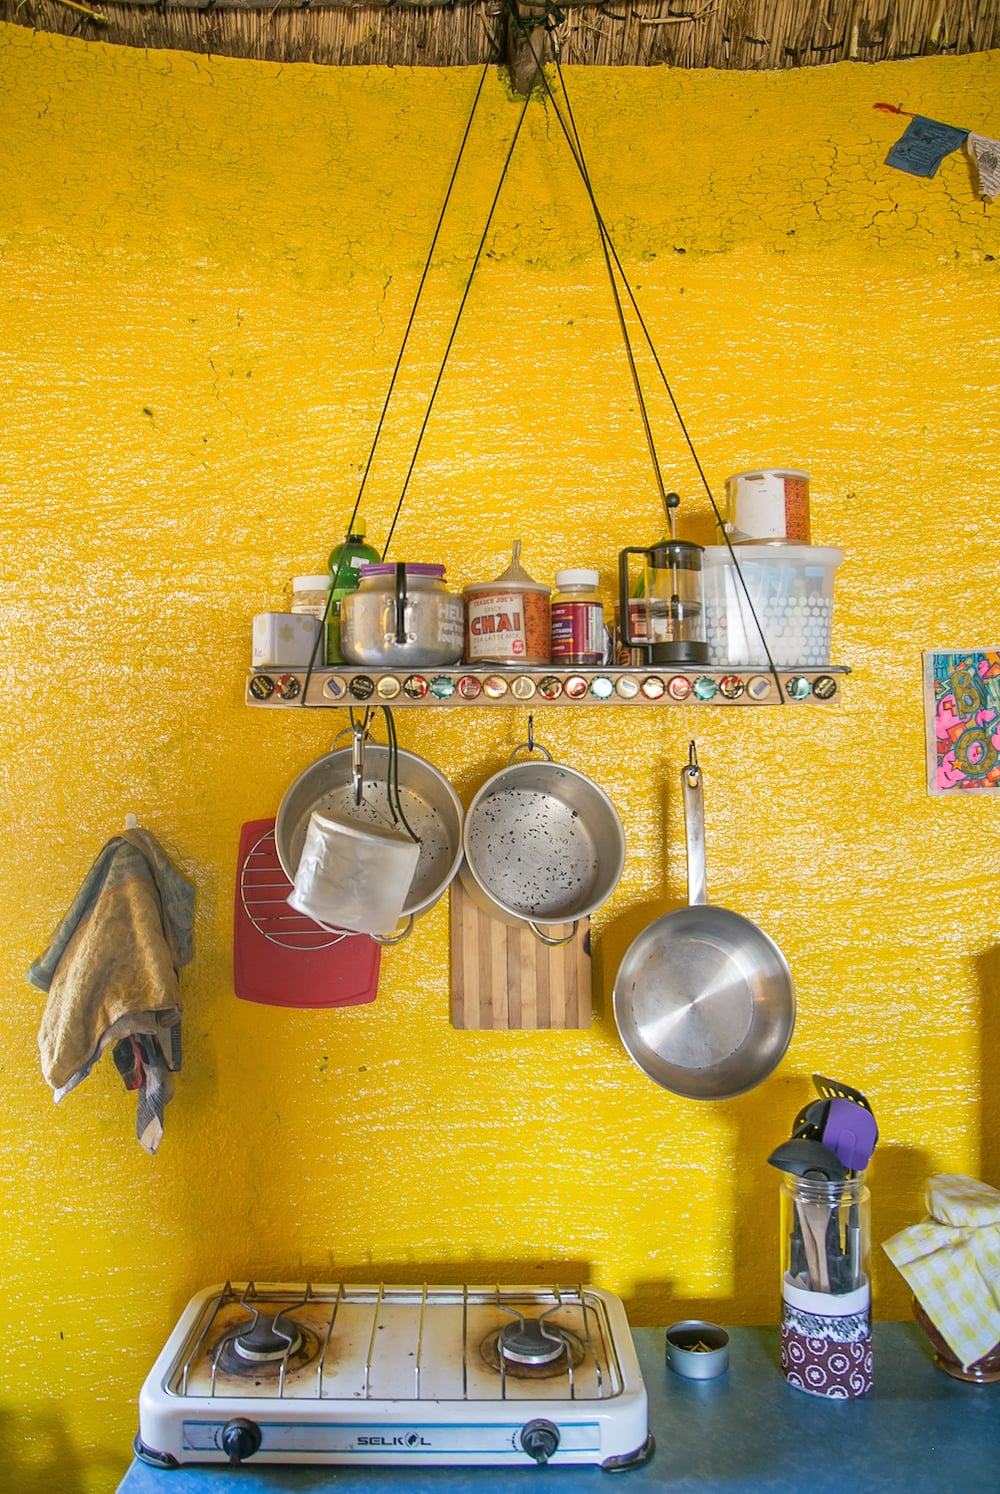 My Pot Rack   What I Used: Strong Paracord (brought from the US), small carabiners as hooks, 4 pieces of 2in. x 2in. wood to build the frame, an old mop sawed into four pieces to make the perpendicular rows where things are hung, Mpowered light, flat board to create the shelf, and nails!          Cost: $20